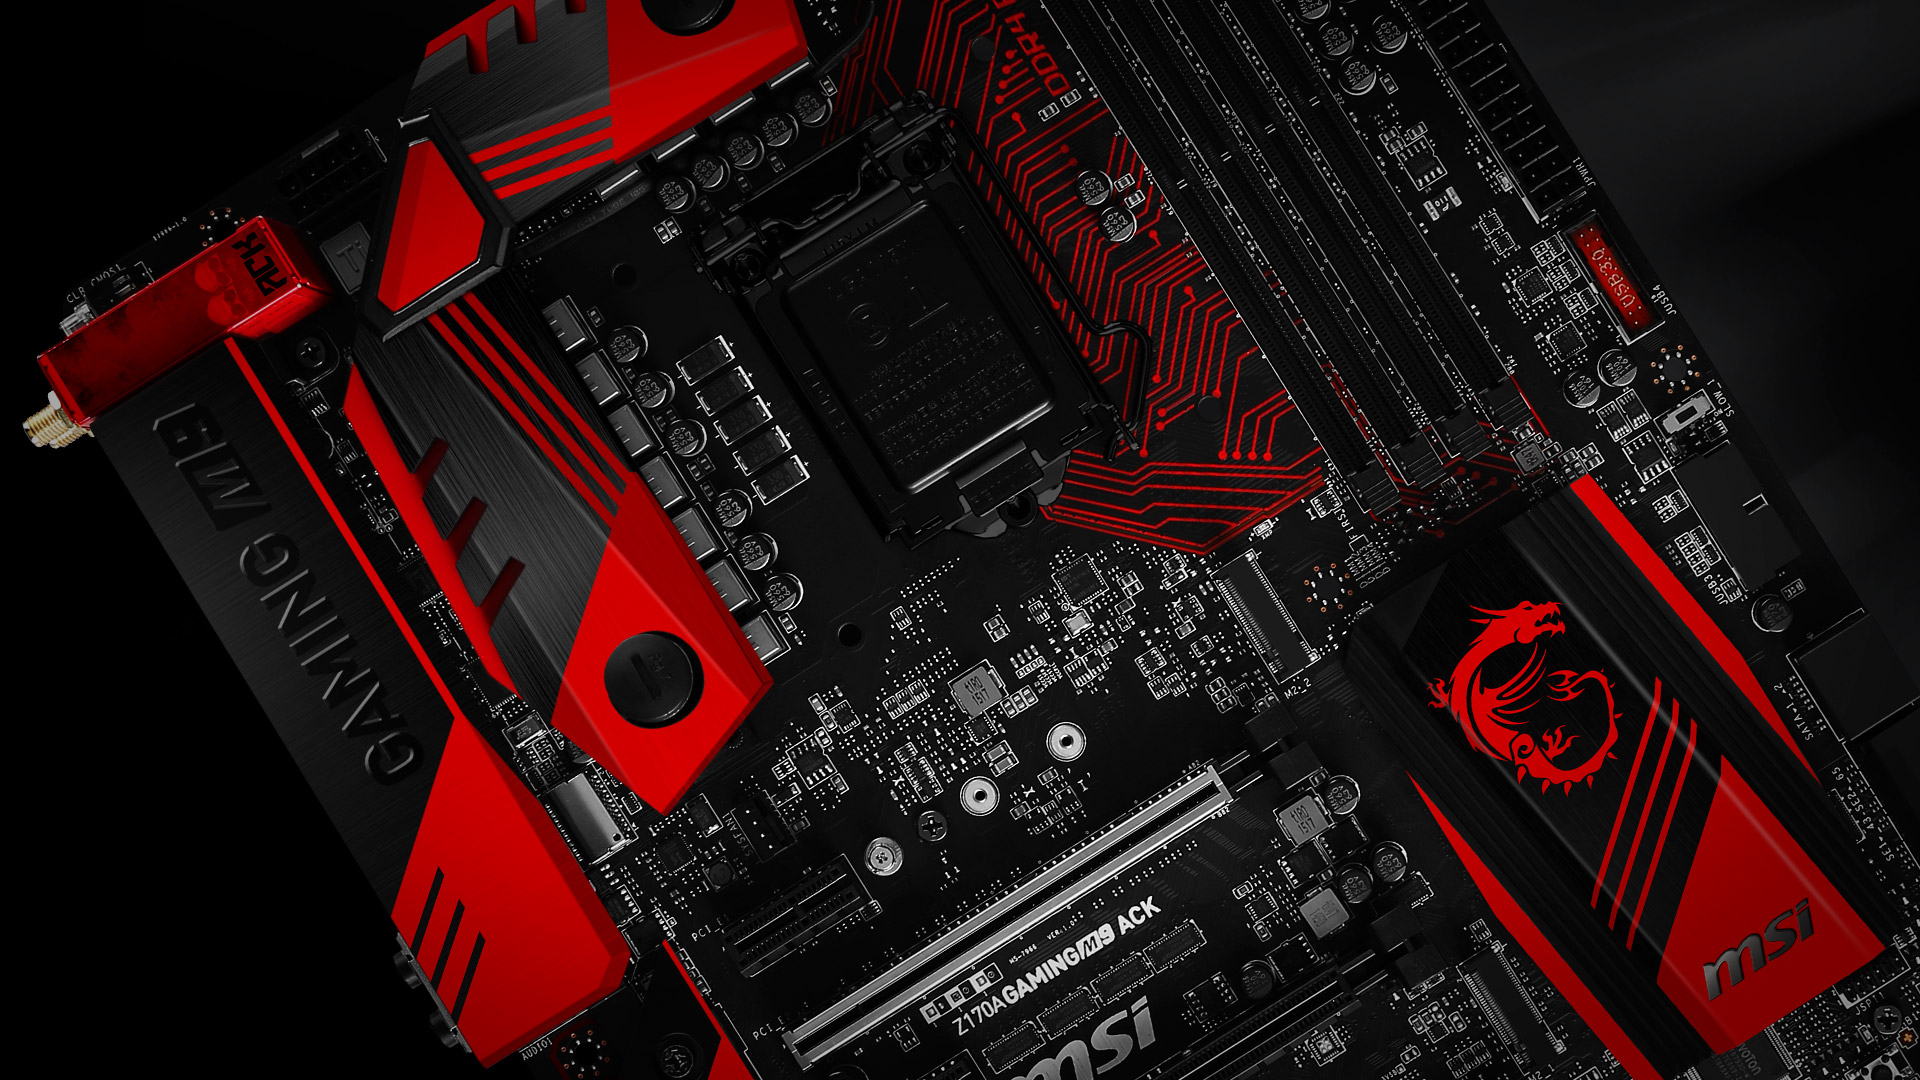 Msi wallpaper 19 1920x1080 voltagebd Images